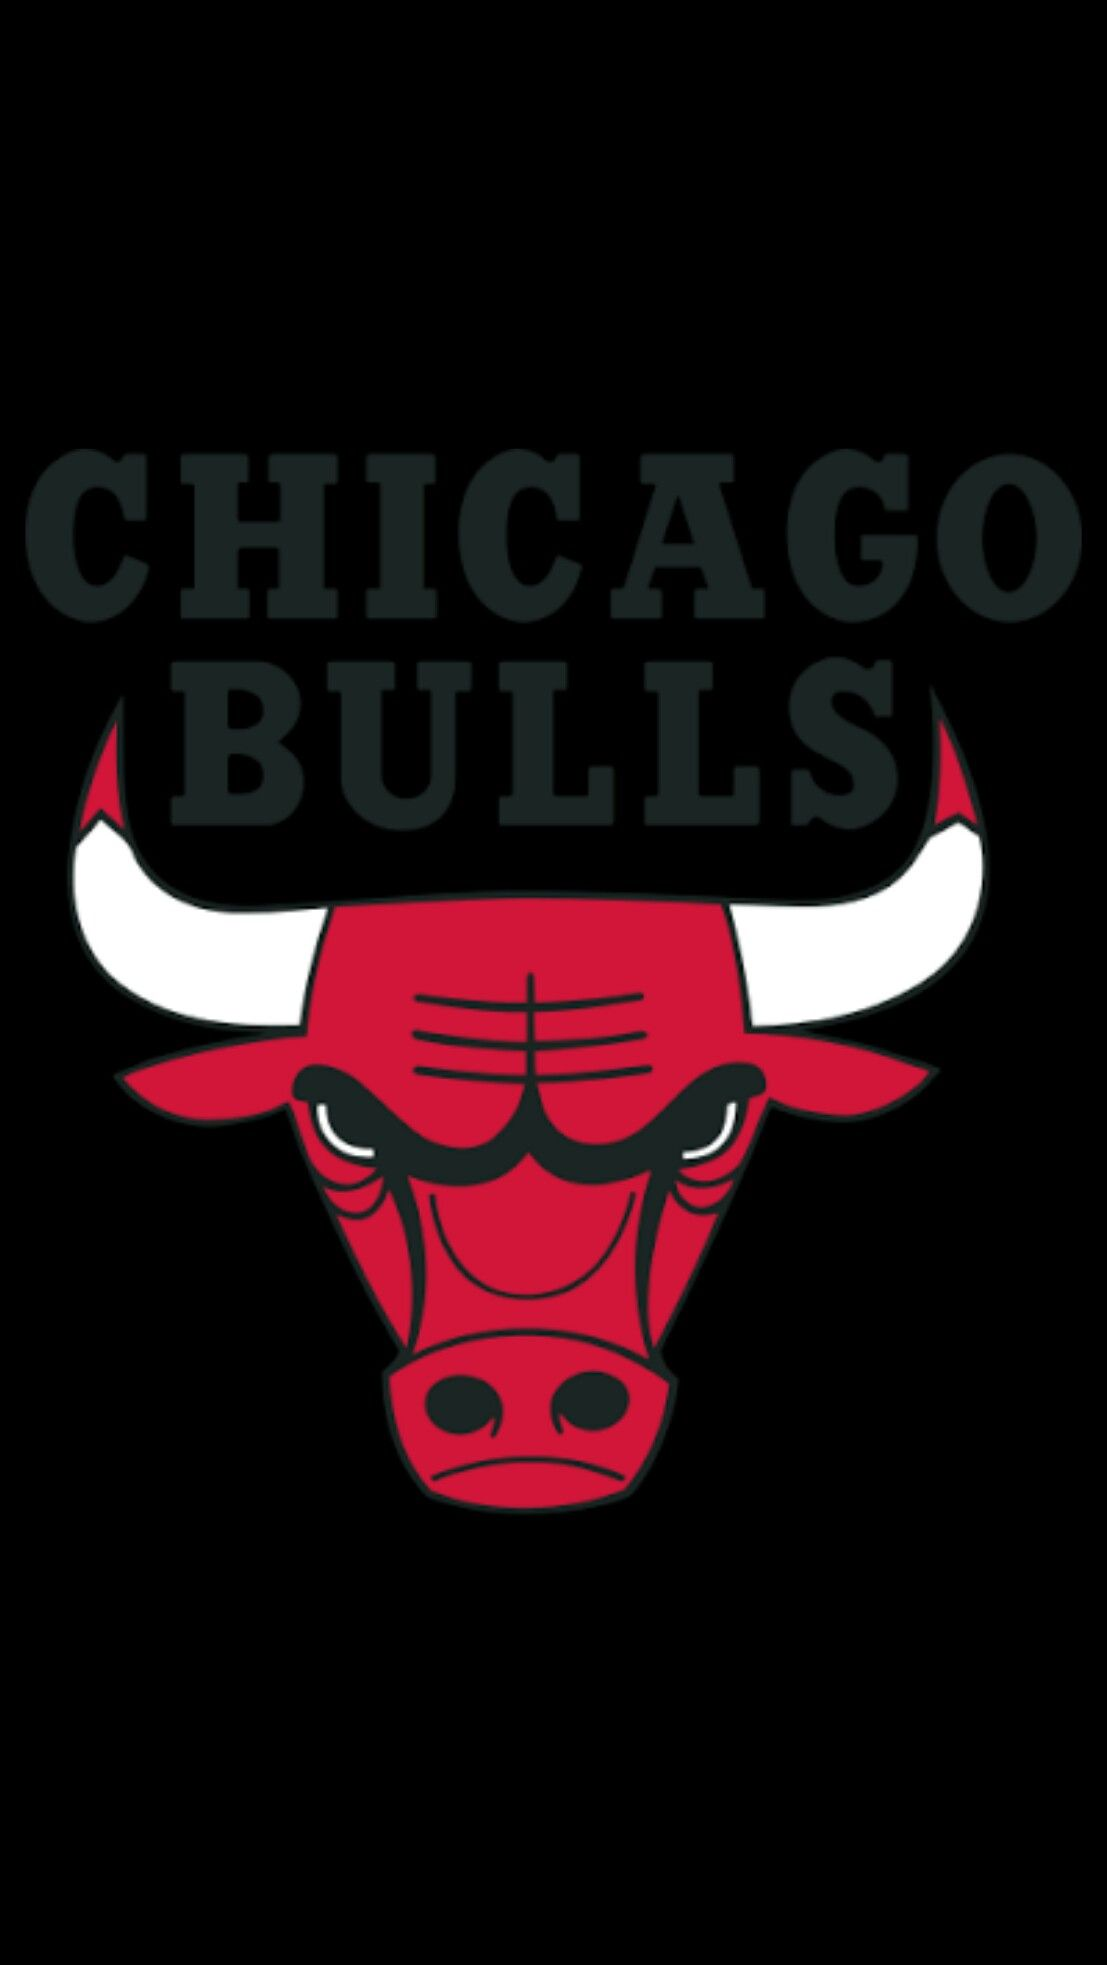 Nba Wallpaper Iphone Android Chicago Bulls Basketball Chicago Bulls Wallpaper Bulls Wallpaper